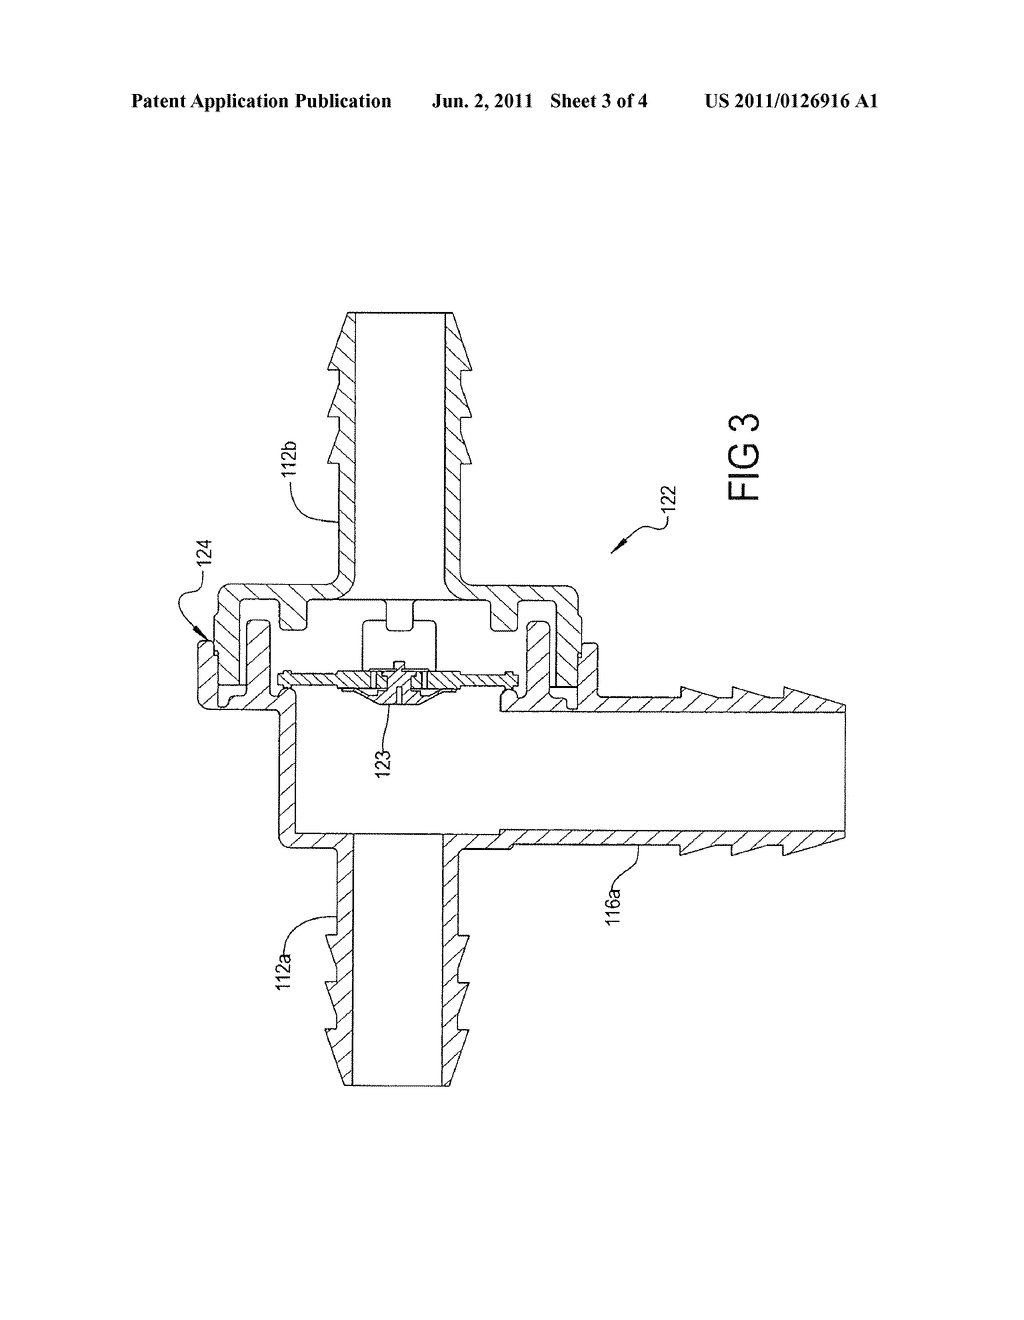 ON-BOARD REFUELING VAPOR RECOVERY SYSTEM WITH VENT LINE